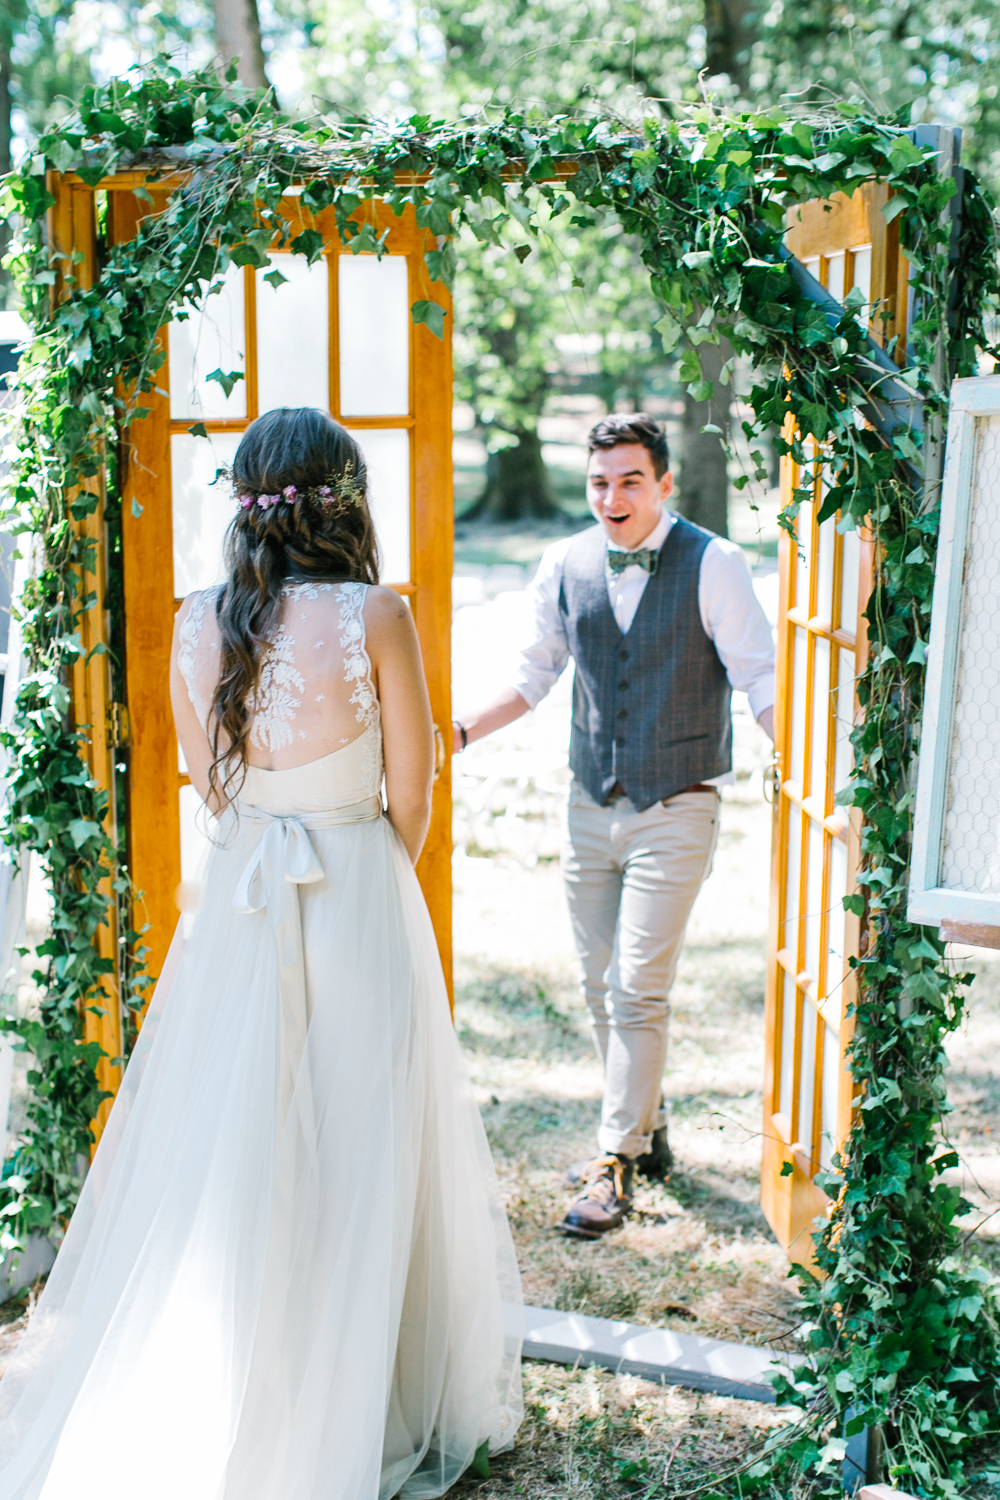 First look - Rustic Oregon Summer Wedding from Maria Lamb Photography - marialamb.co